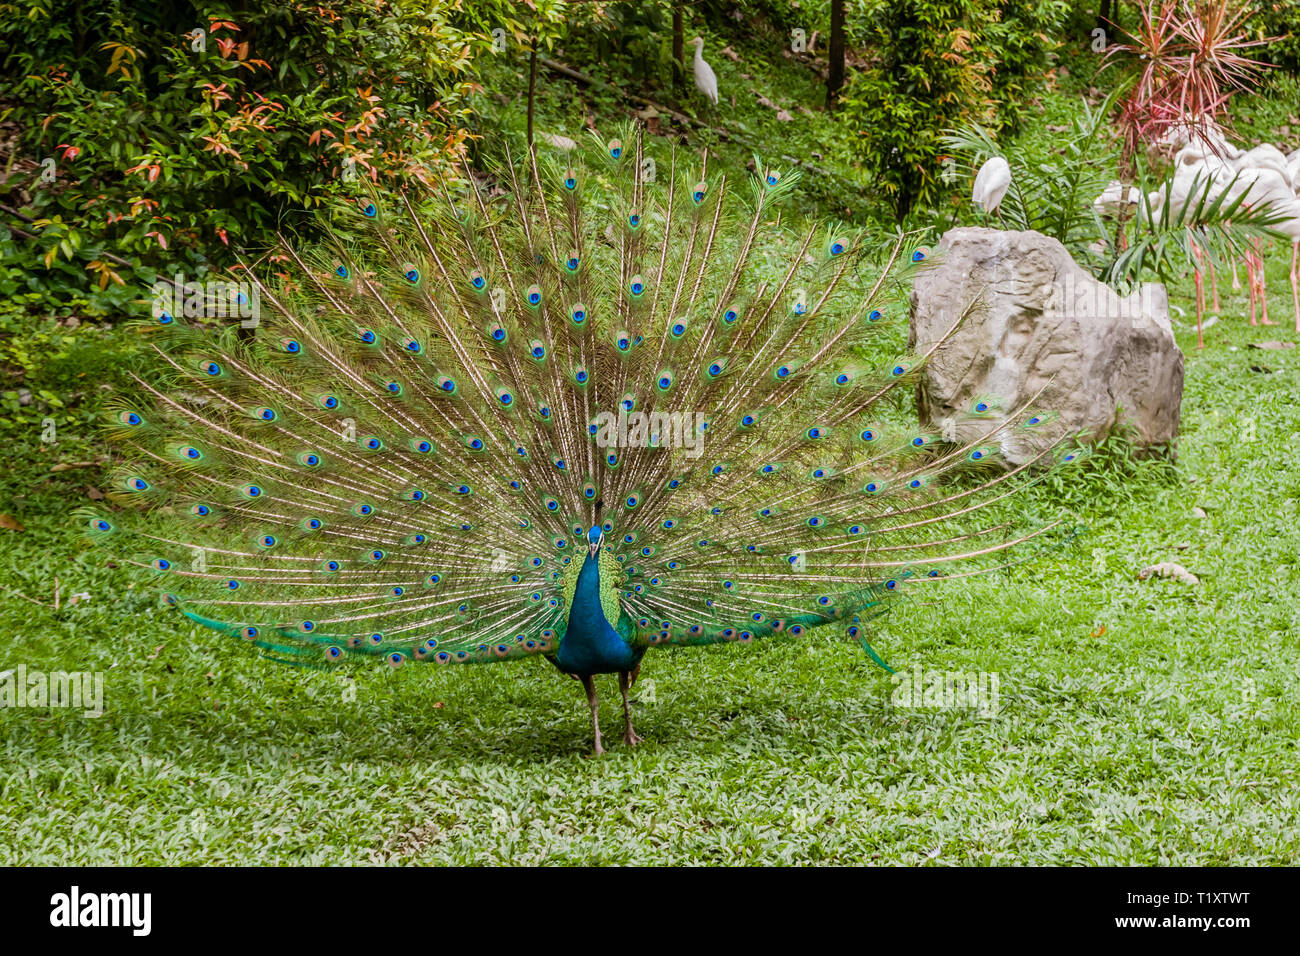 A gorgeous Indian peacock in a park - Stock Image